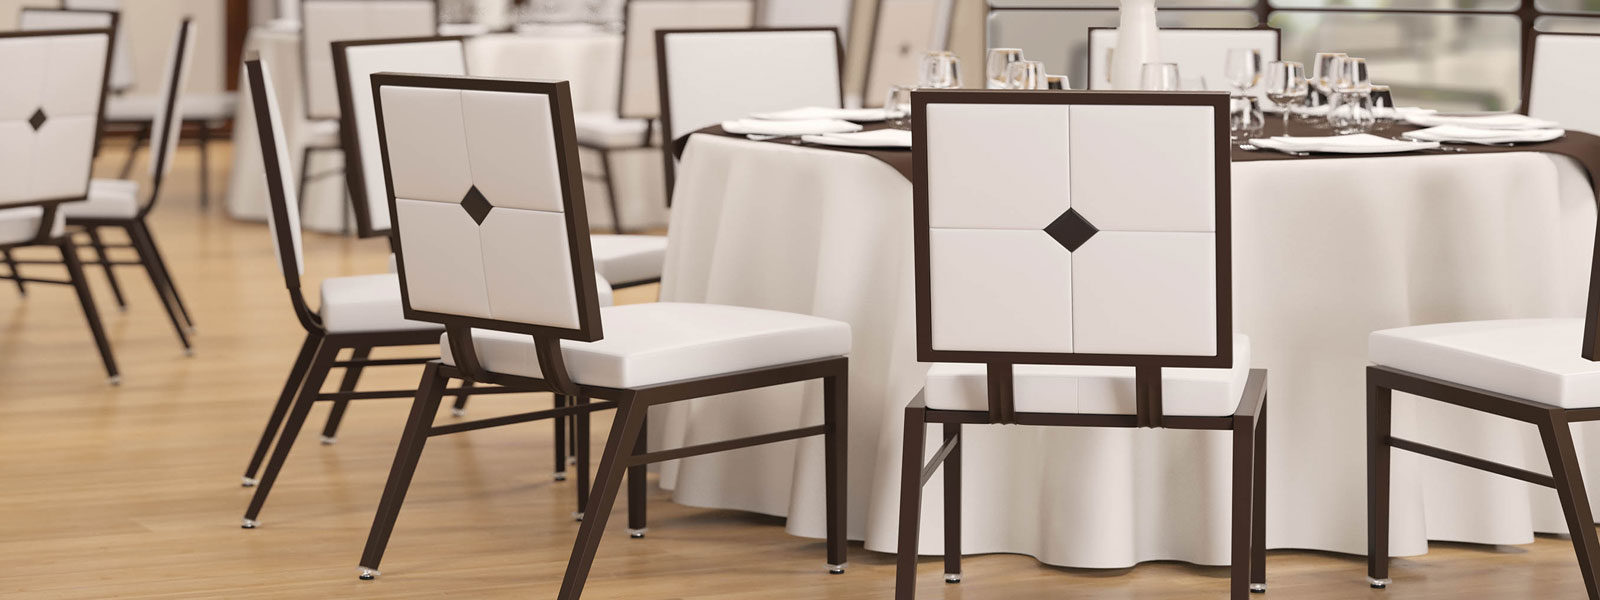 Banquet Furniture Manufacturers